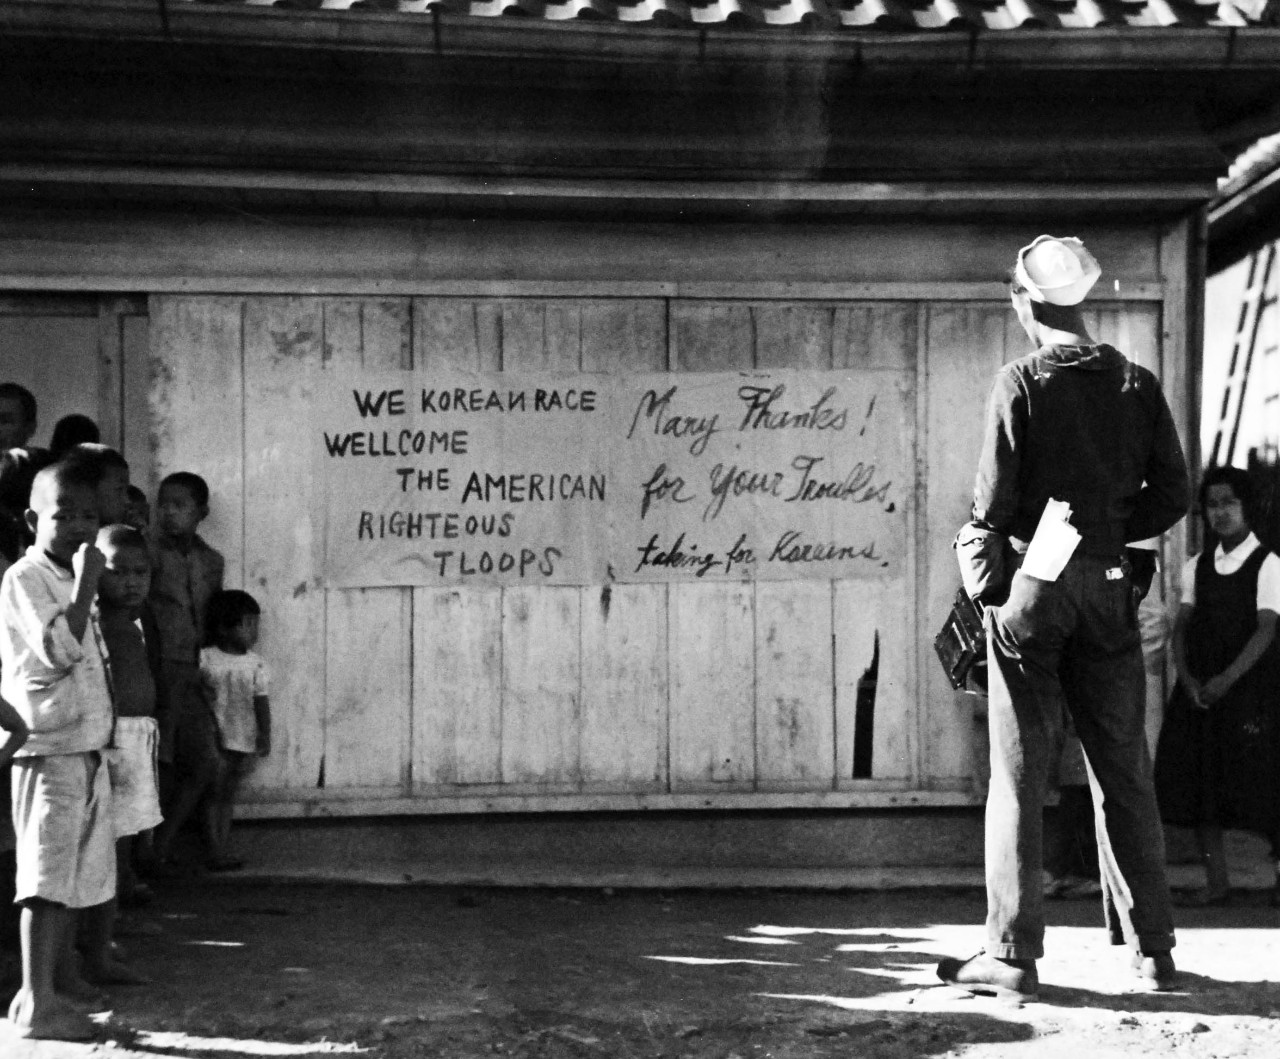 80-G-490500:   Occupation of Korea, September 8, 1945.   A U.S.Navy enlisted man stops to read a welcome sign an hour after the initial wave of the 24th U.S .Army Corps troops was landed at Jinsen, Korea, by Vice Admiral D.E. Barbey's Seventh Amphibious Force, 8 September 1945.   Official U.S. Navy Photograph, now in the collections of the National Archives.